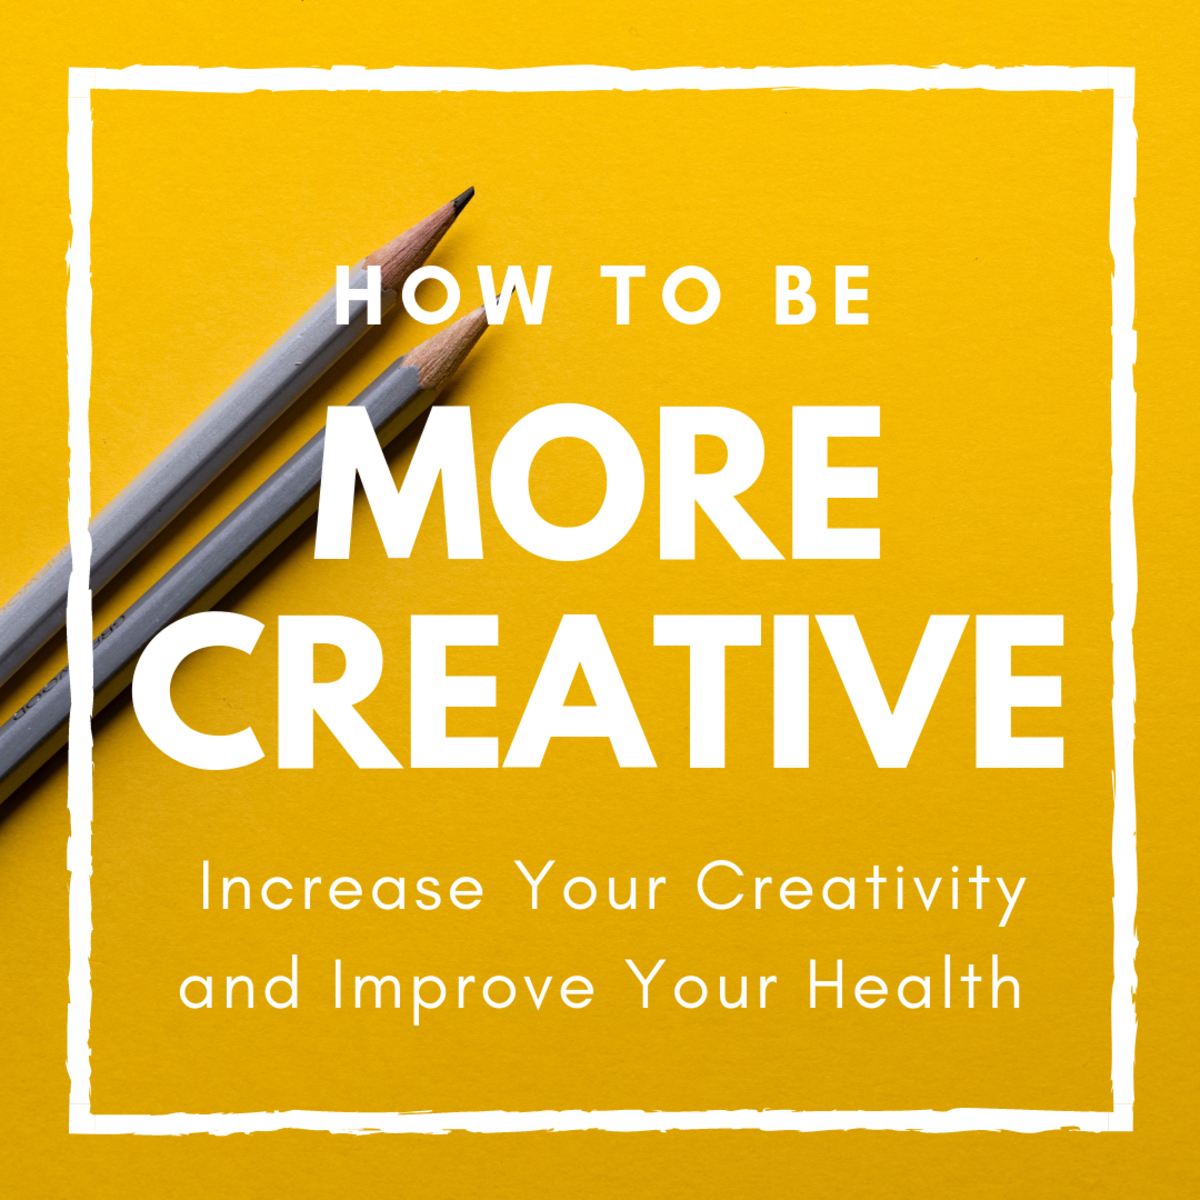 Learn how to increase your creativity—you'll be happier and healthier.